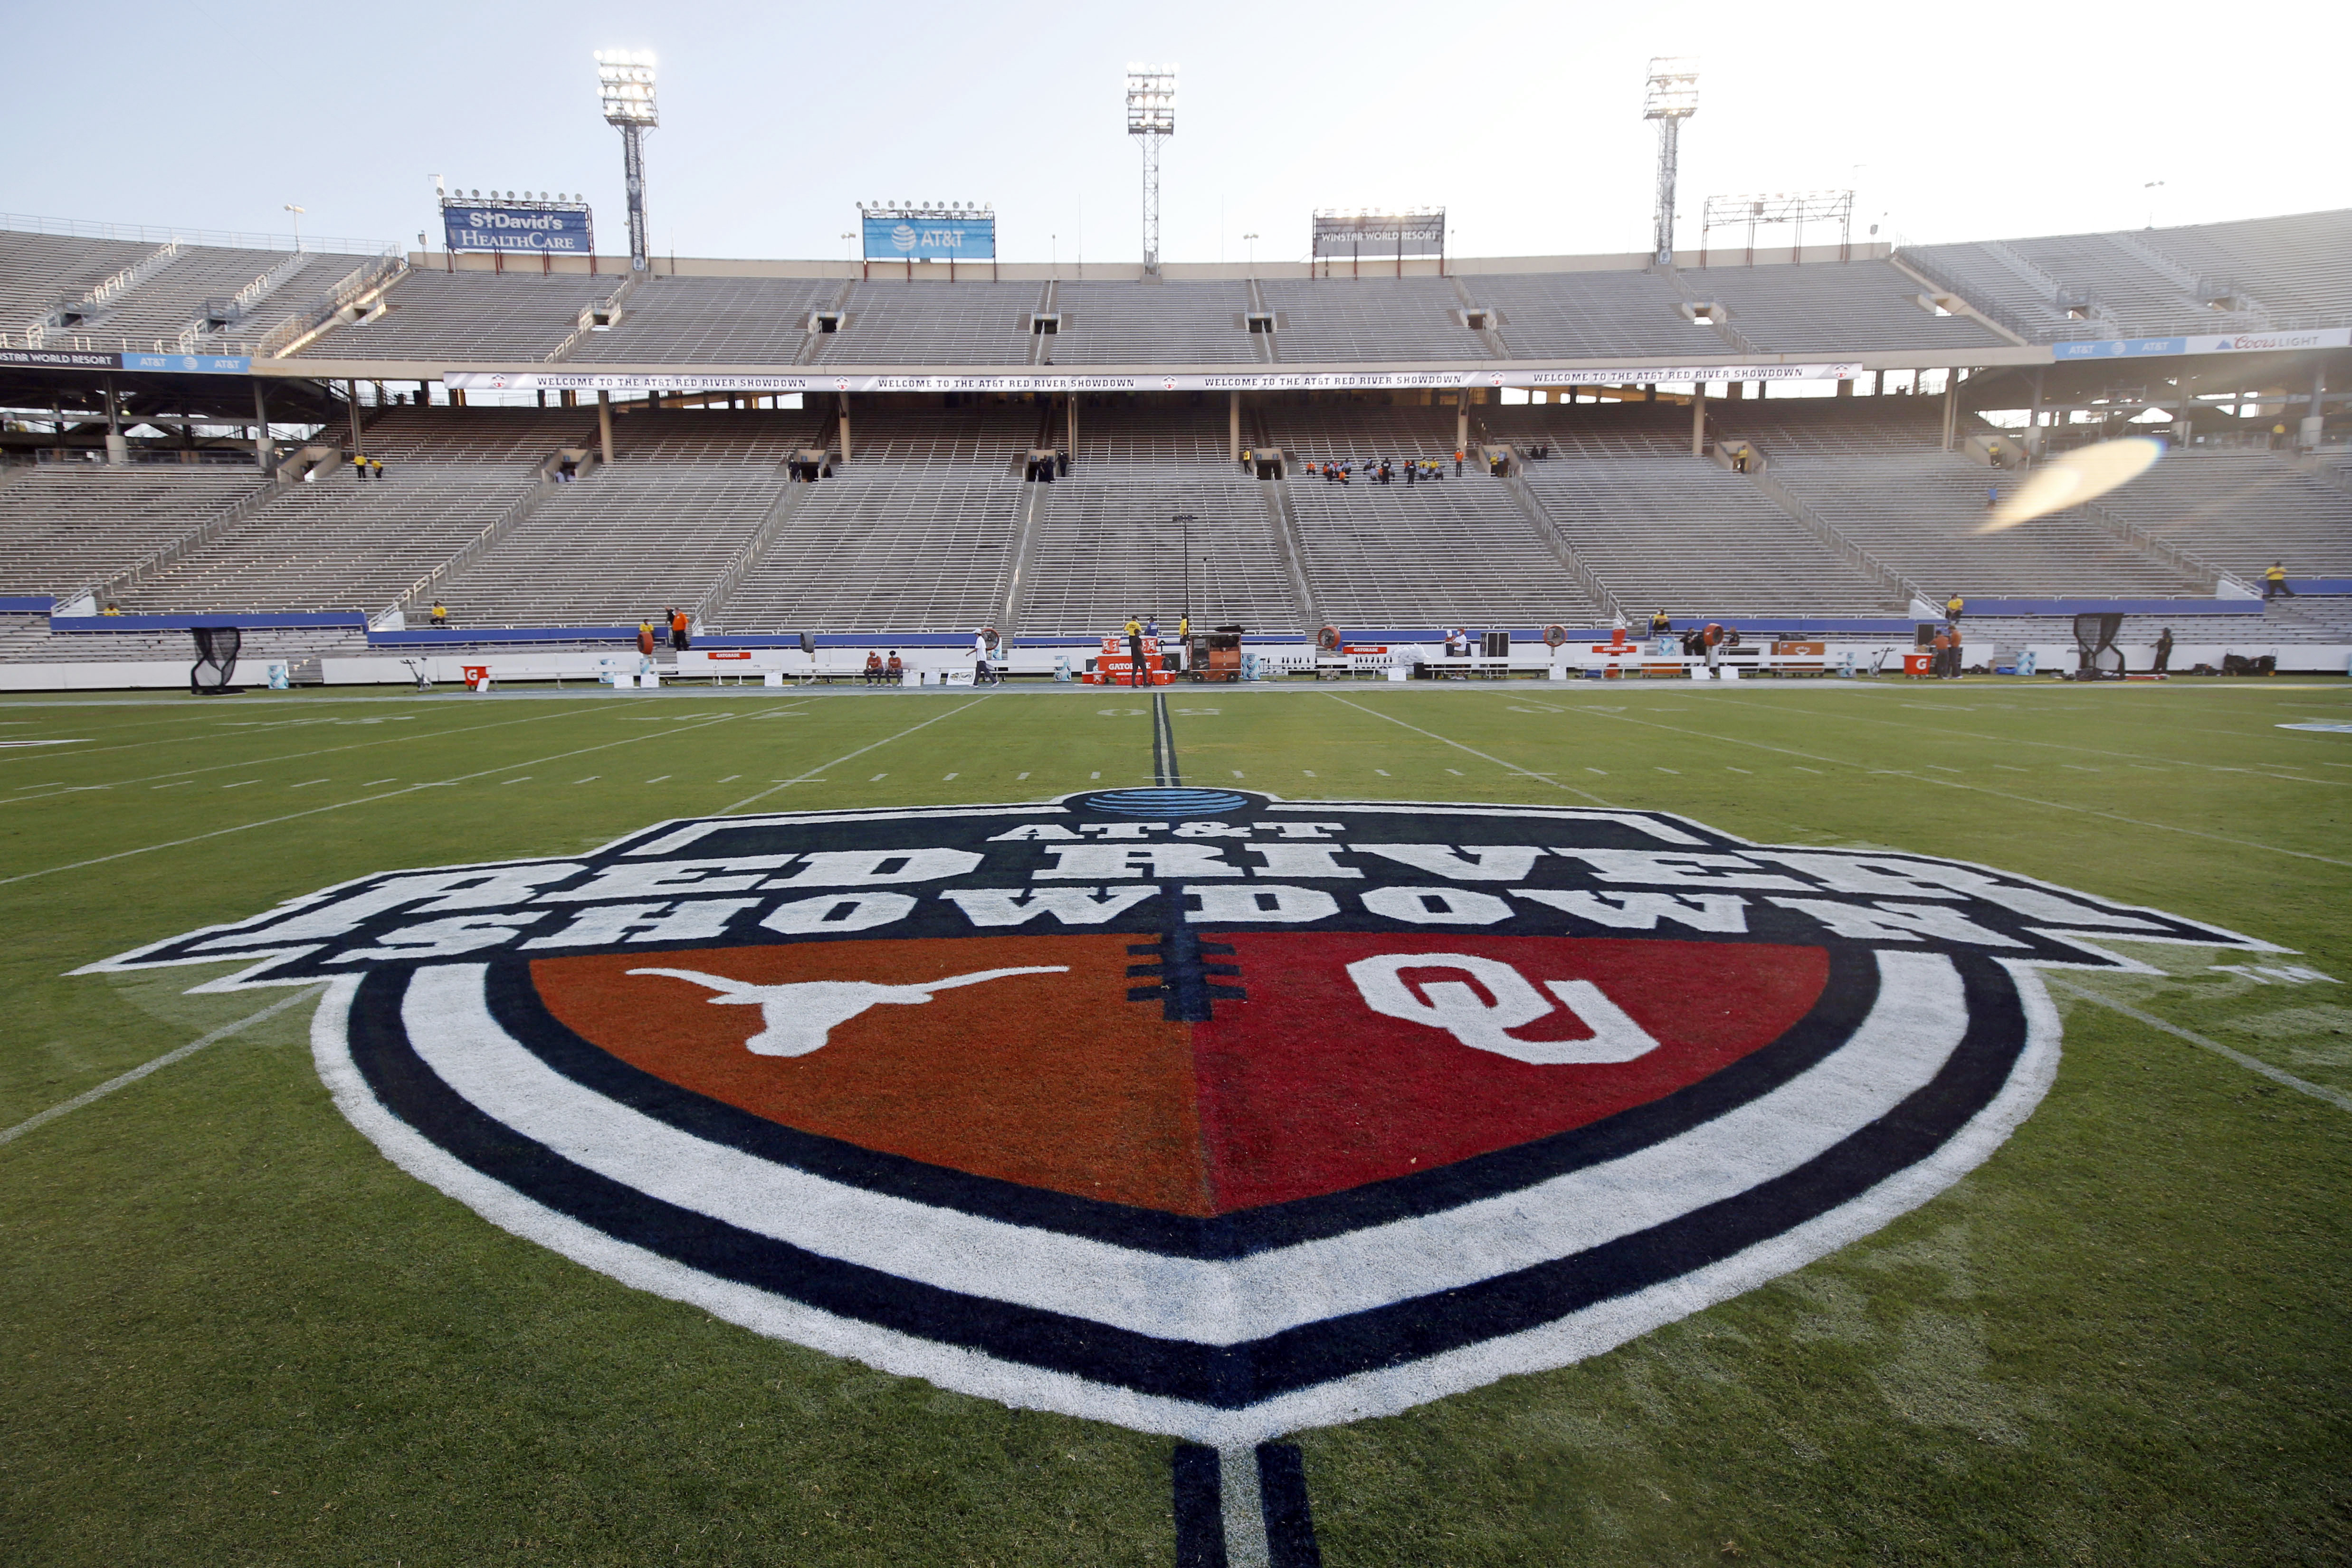 Texas and Oklahoma logos are seen on the Cotton Bowl field in Dallas.